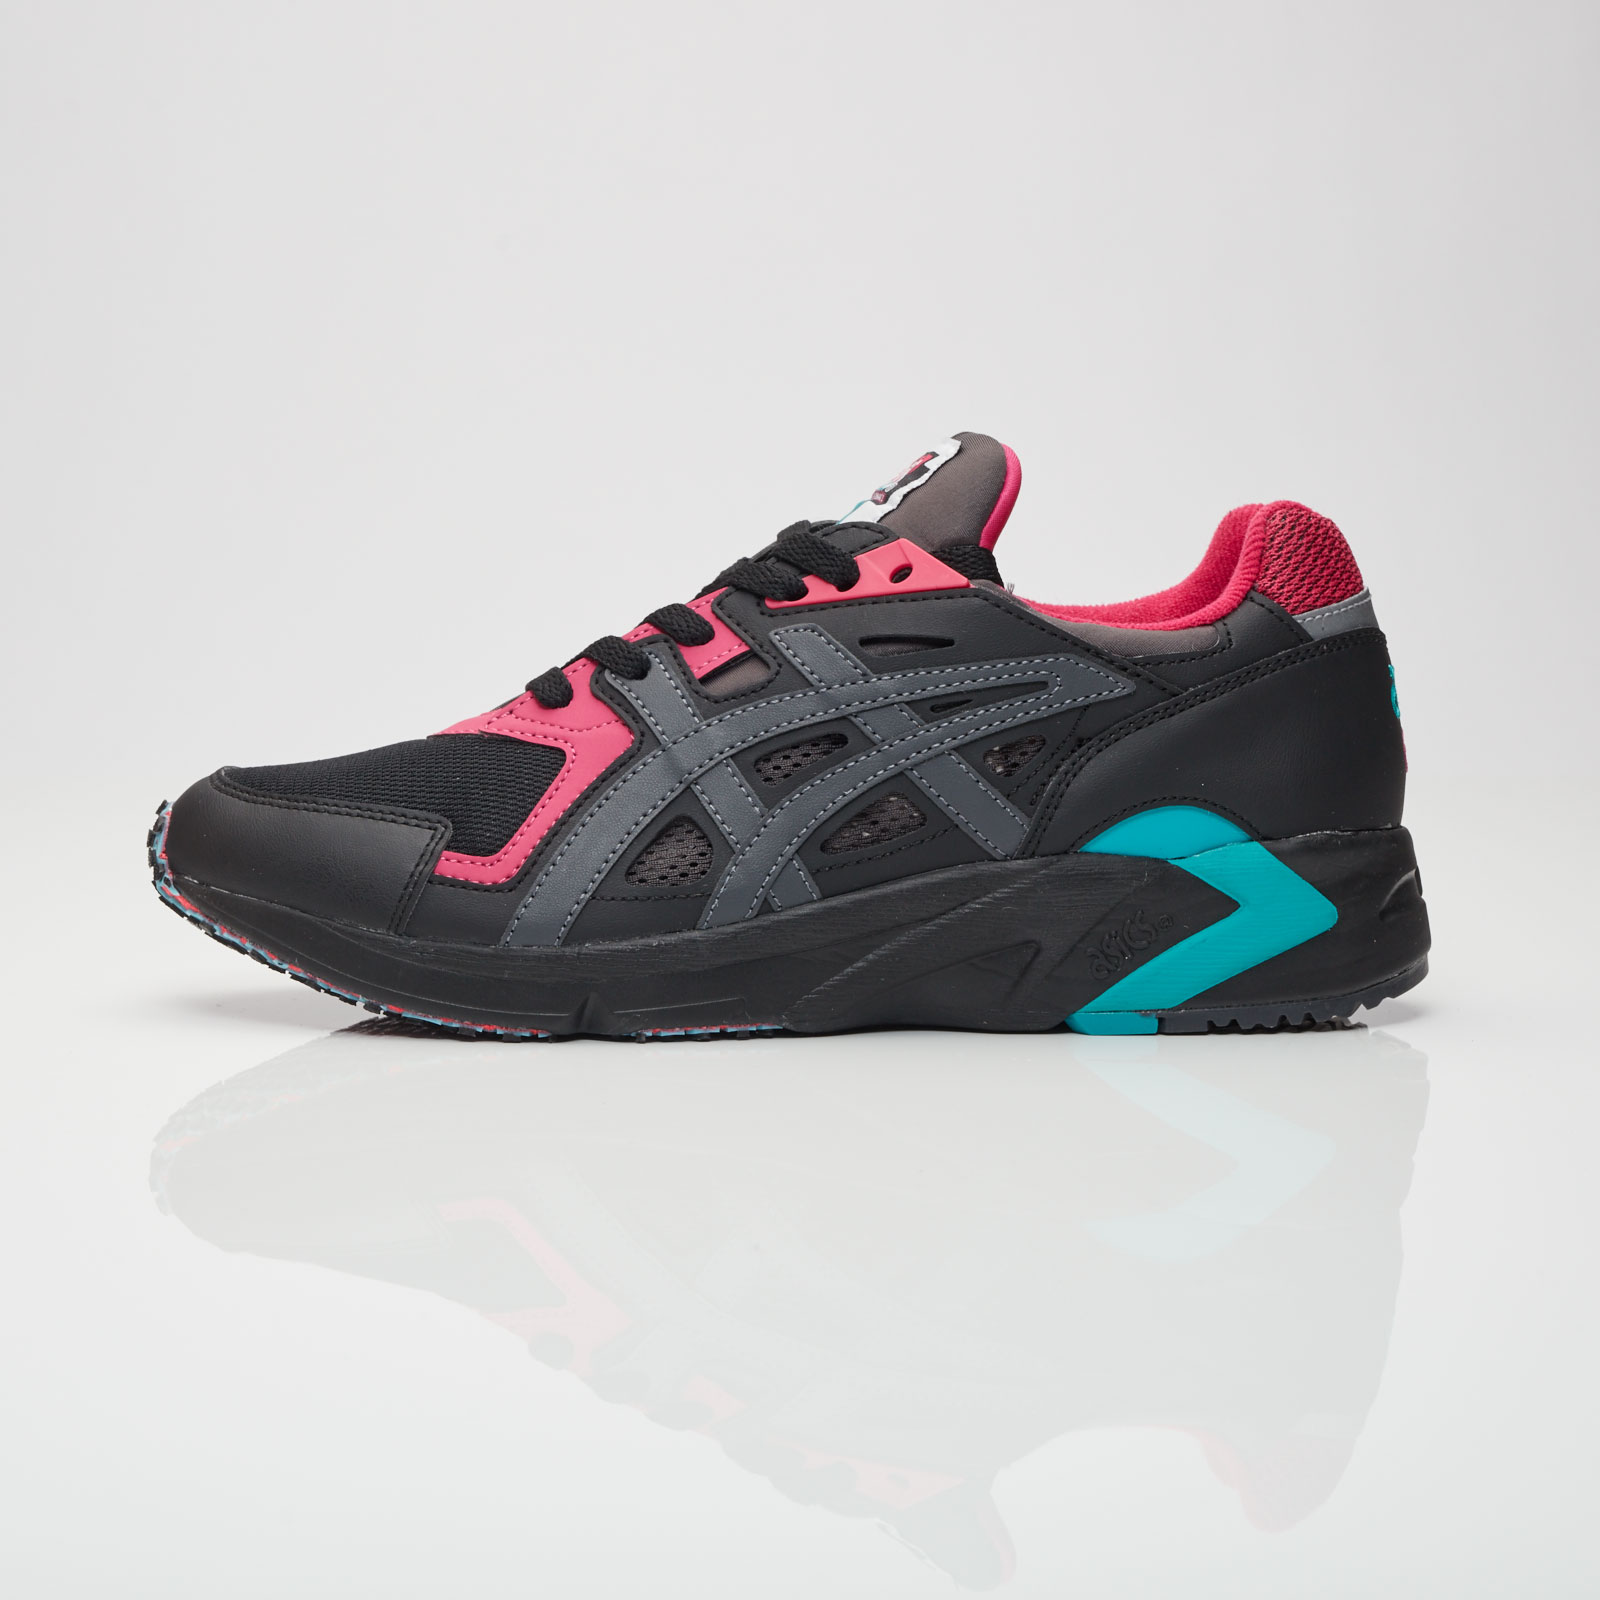 check out 57670 8a09e ASICS Tiger Gel-Ds Trainer Og - H704y-9095 - Sneakersnstuff   sneakers    streetwear online since 1999